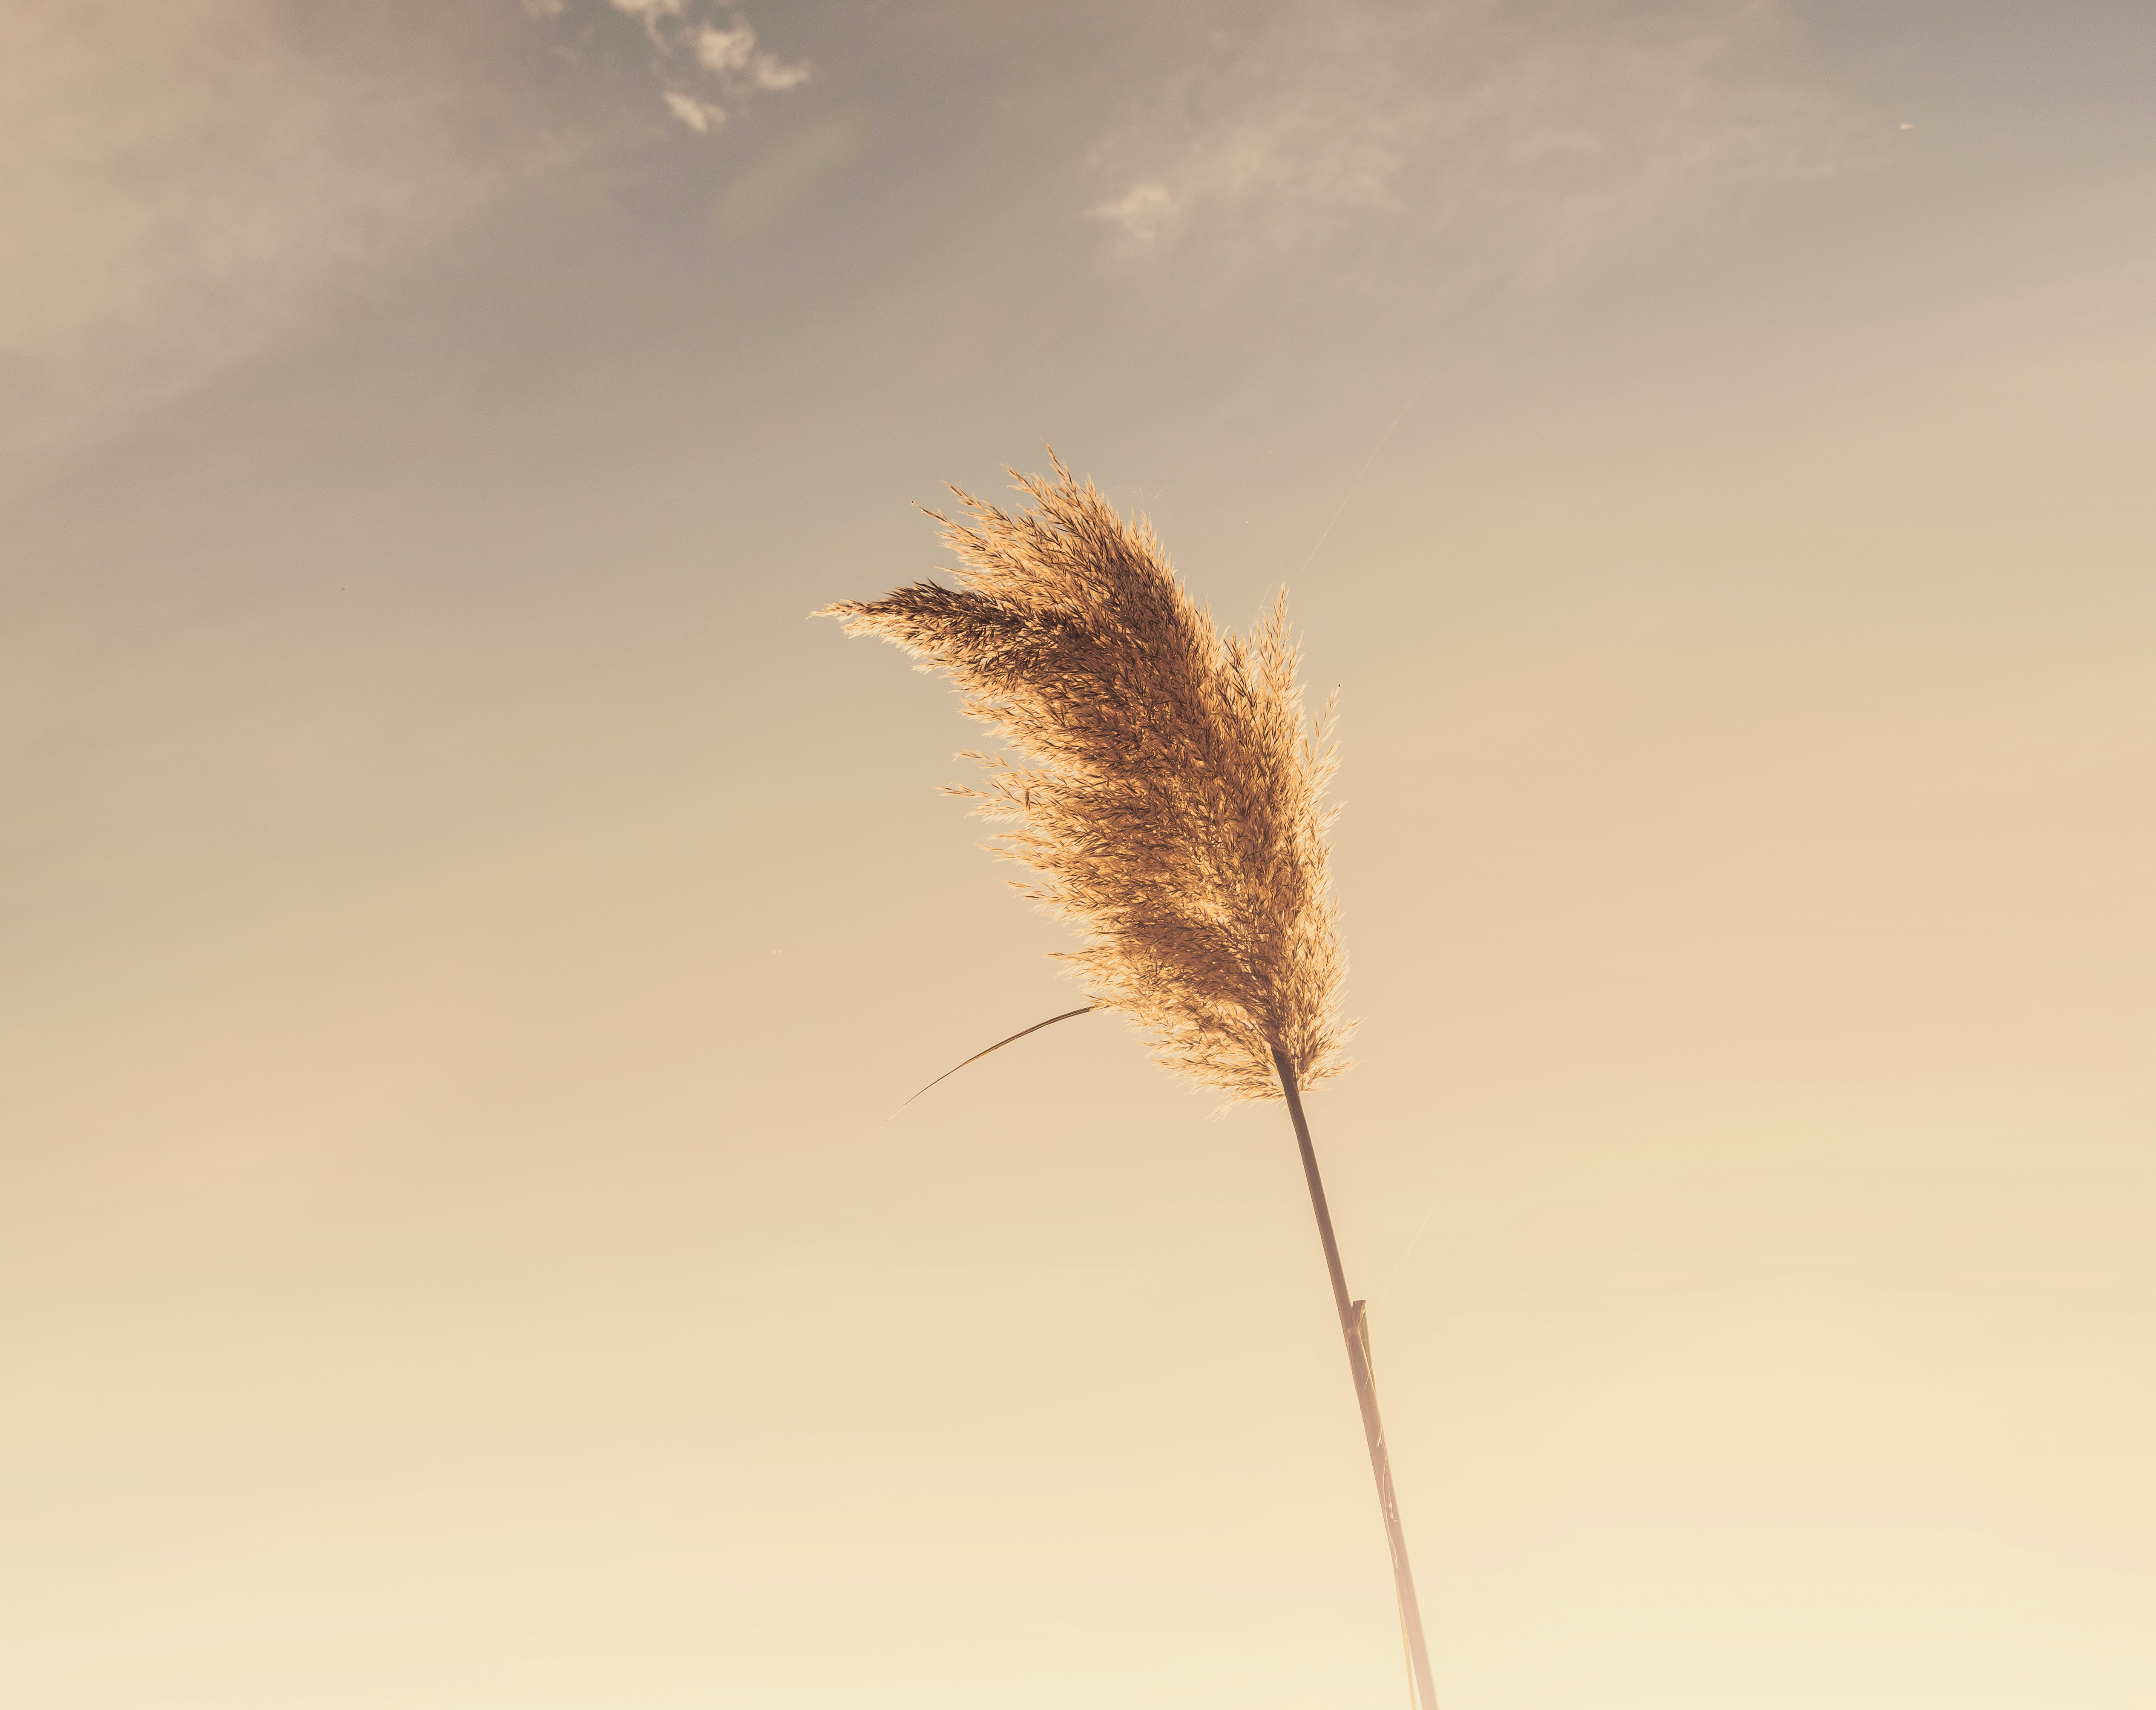 A single golden ear of wheat waving in the wind against a bright sky